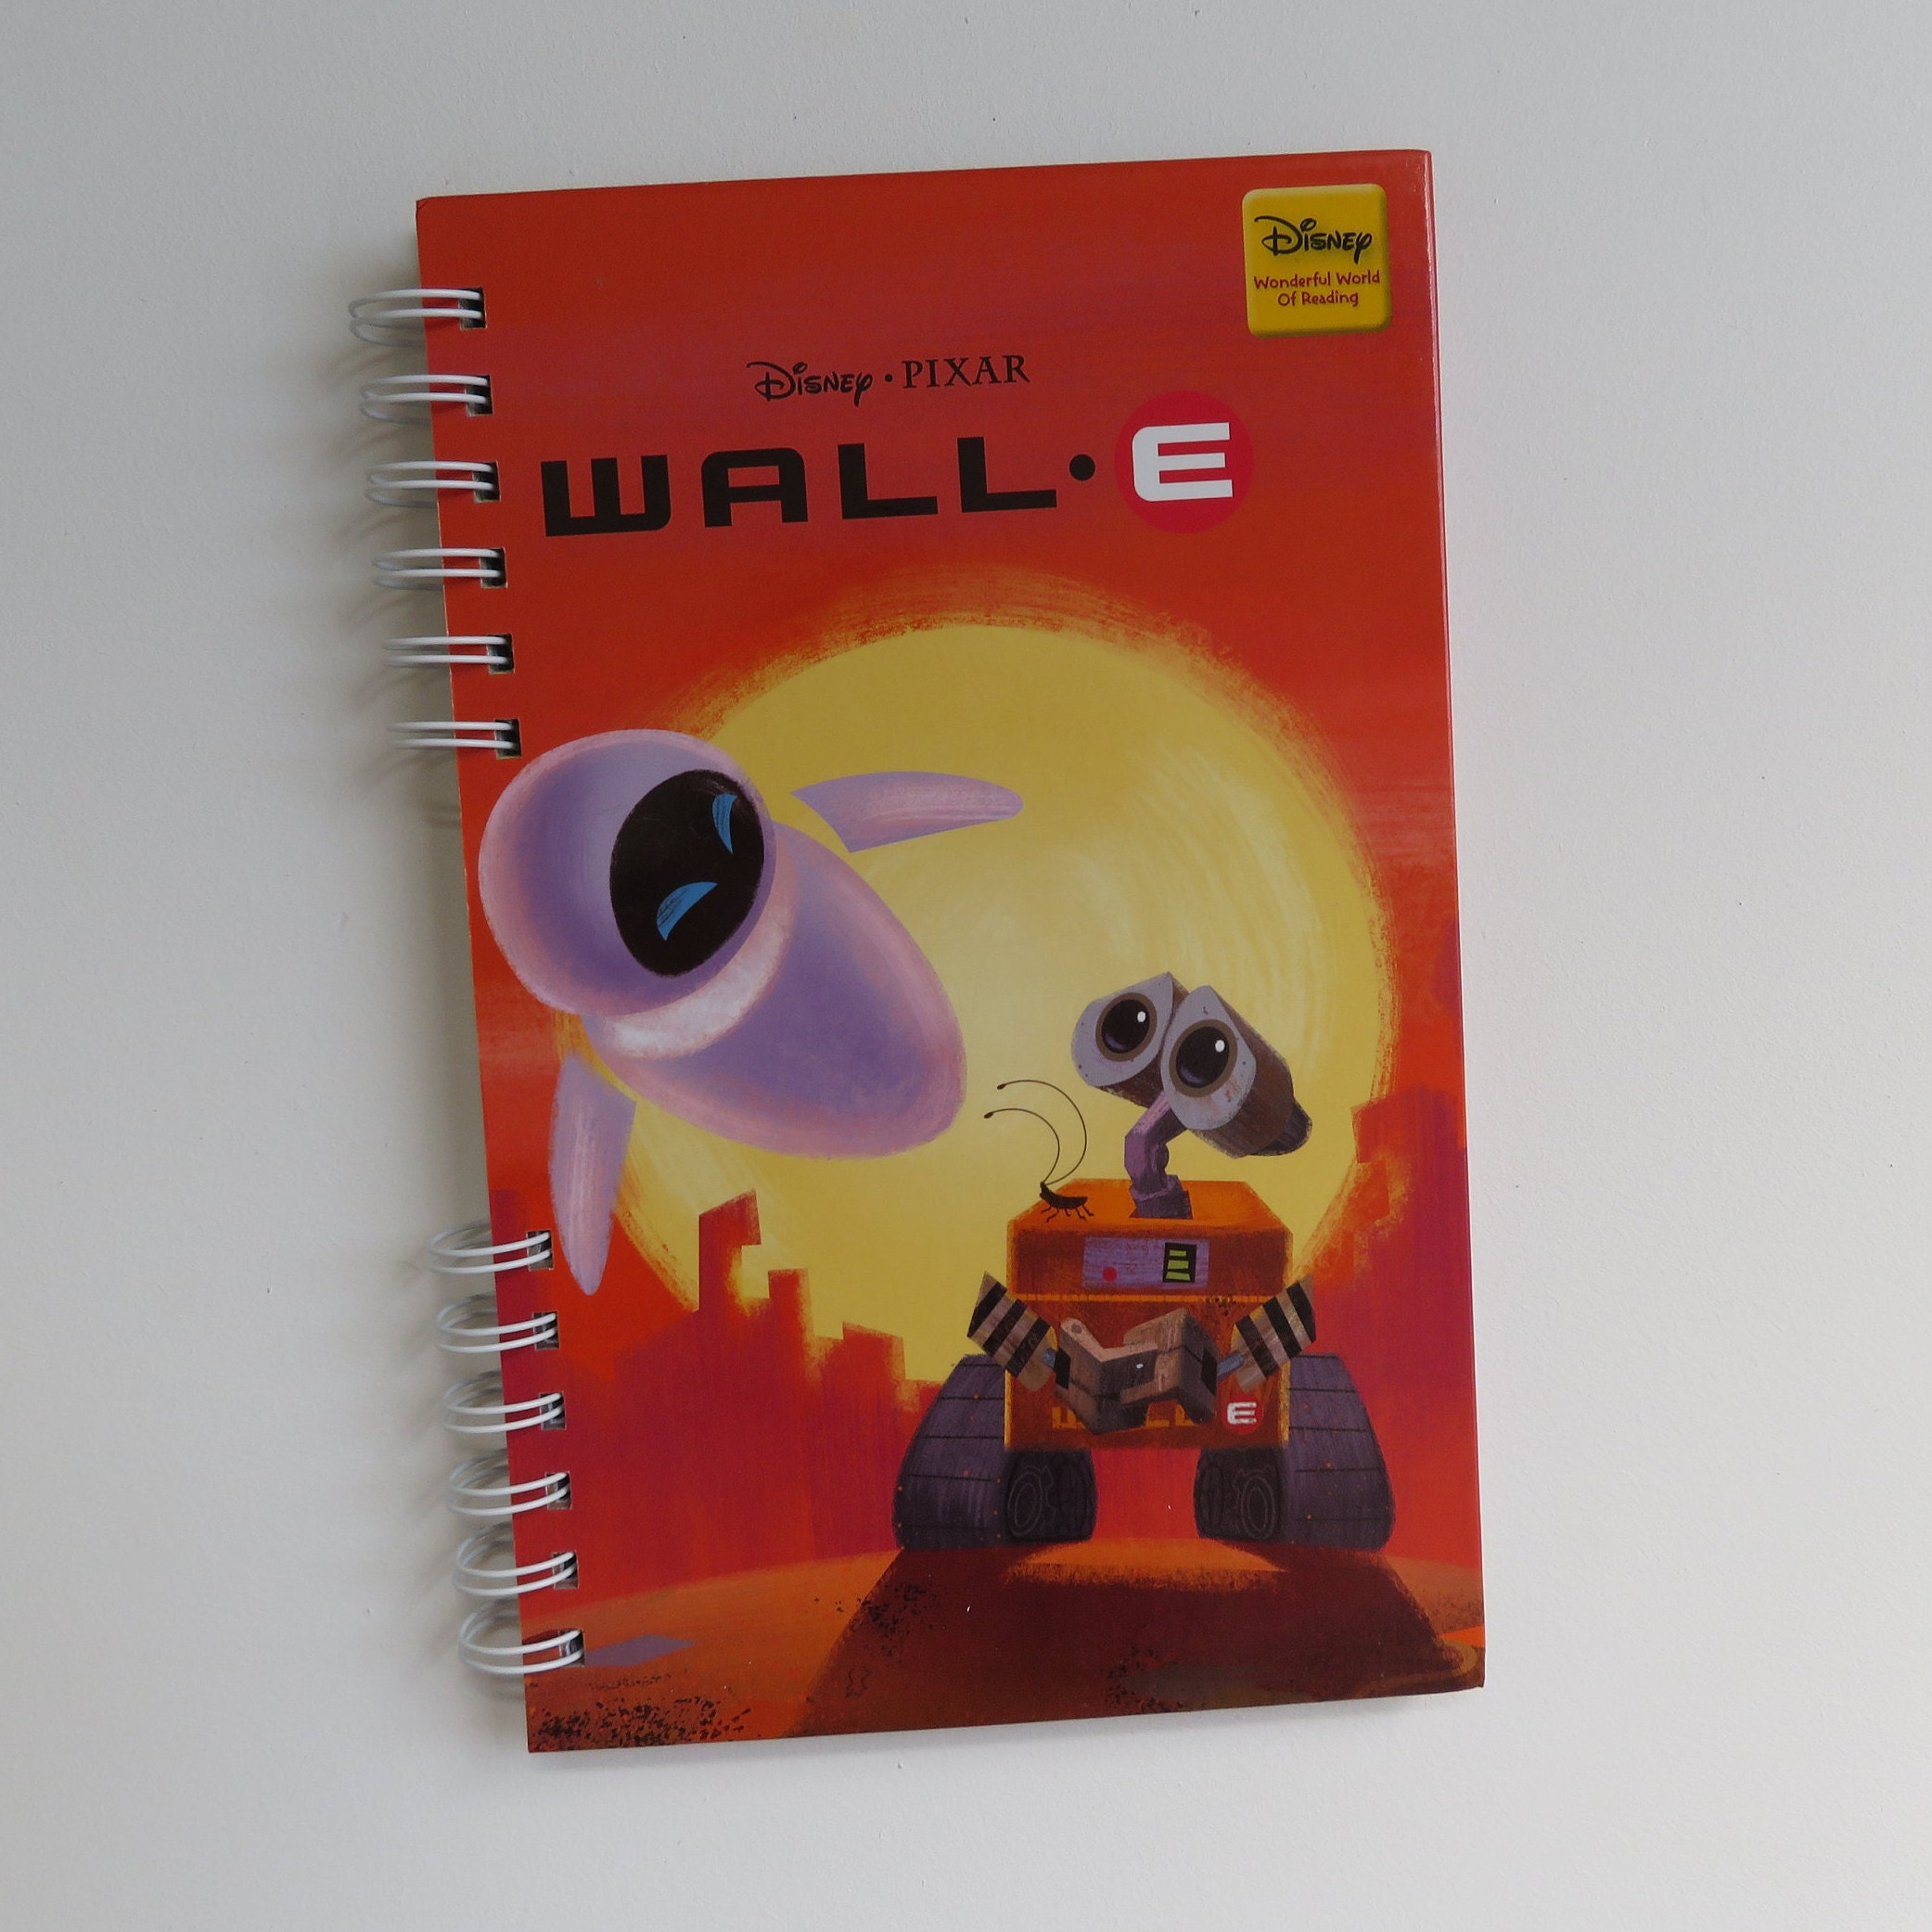 Pixar WALL E Lined Journal - Handmade Upcycled Storybook Journal -  Disney/Pixar